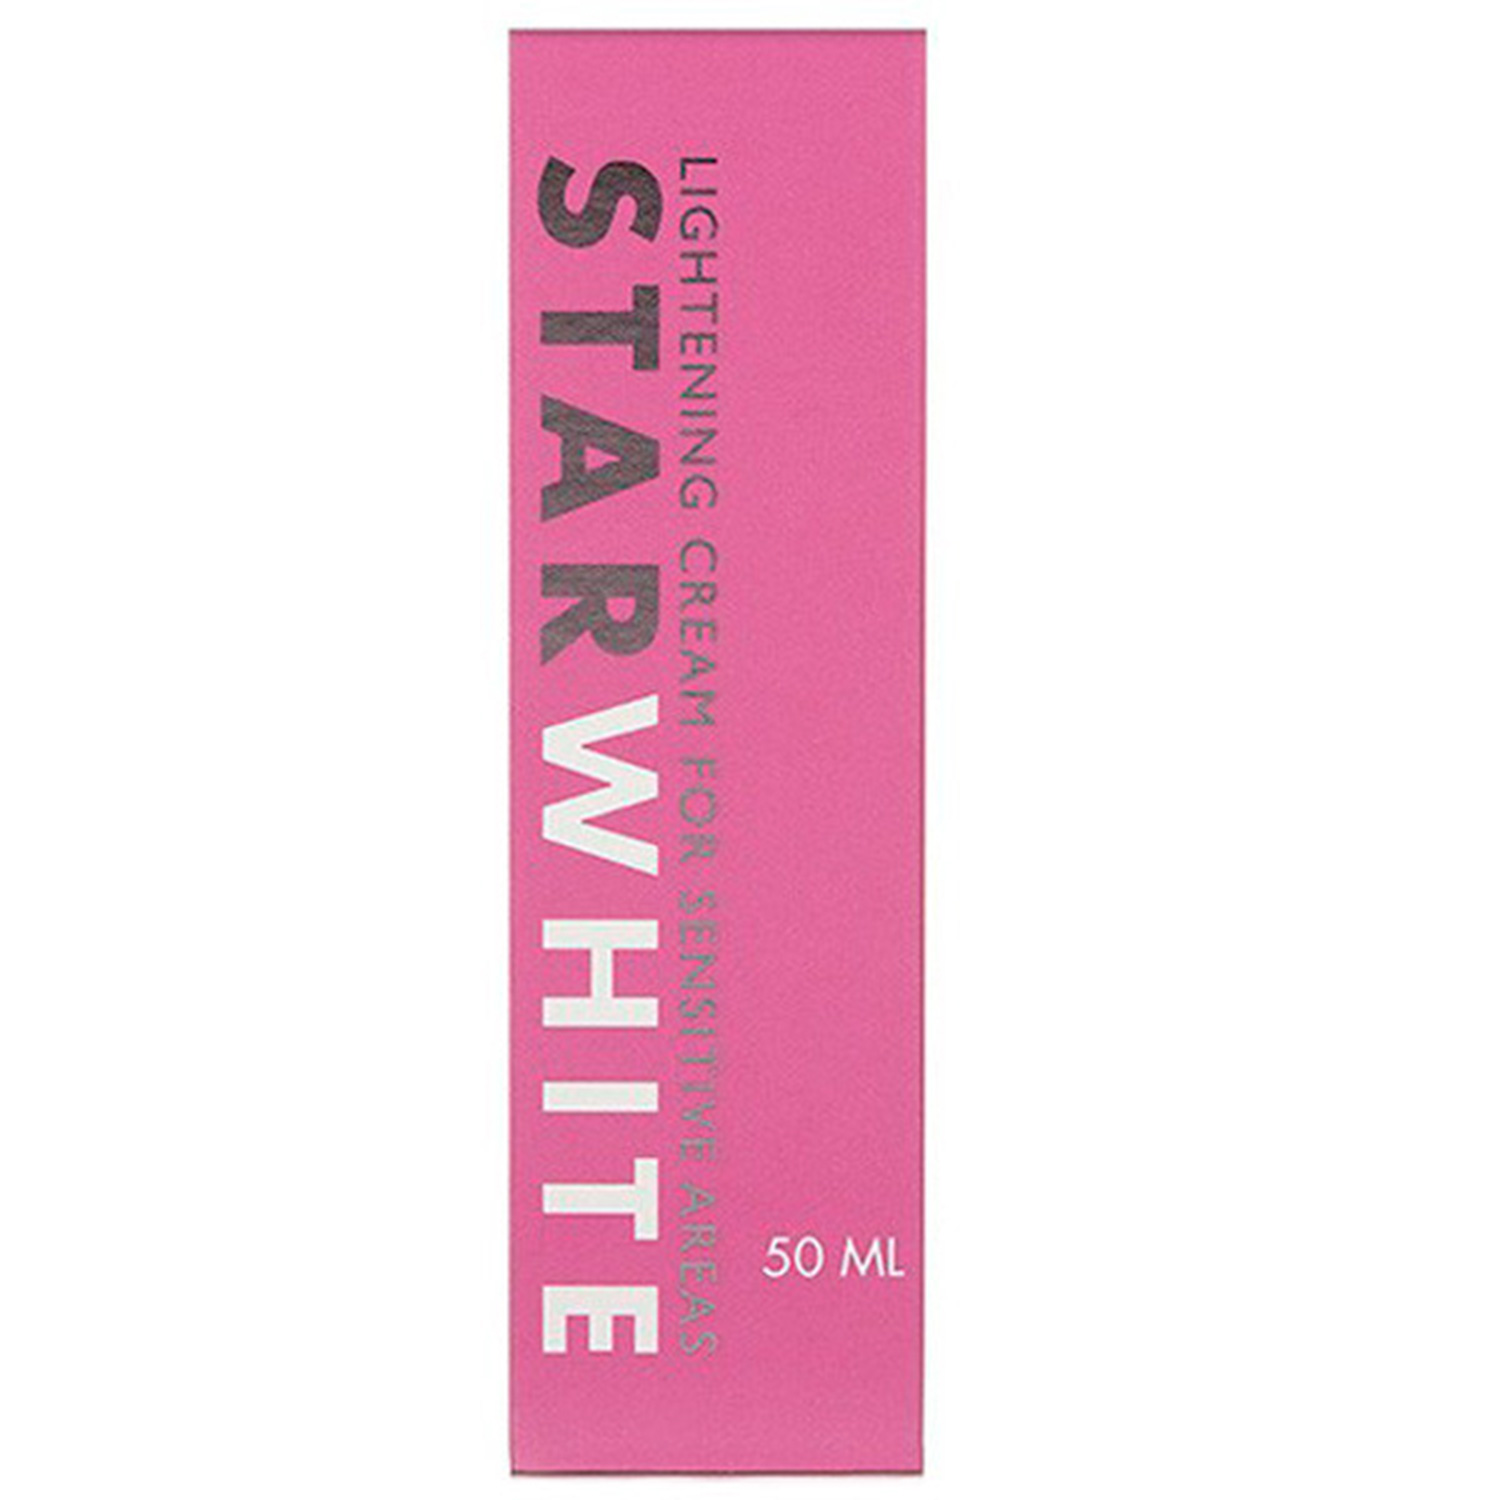 Starwhite Lightening Creme 50 ml